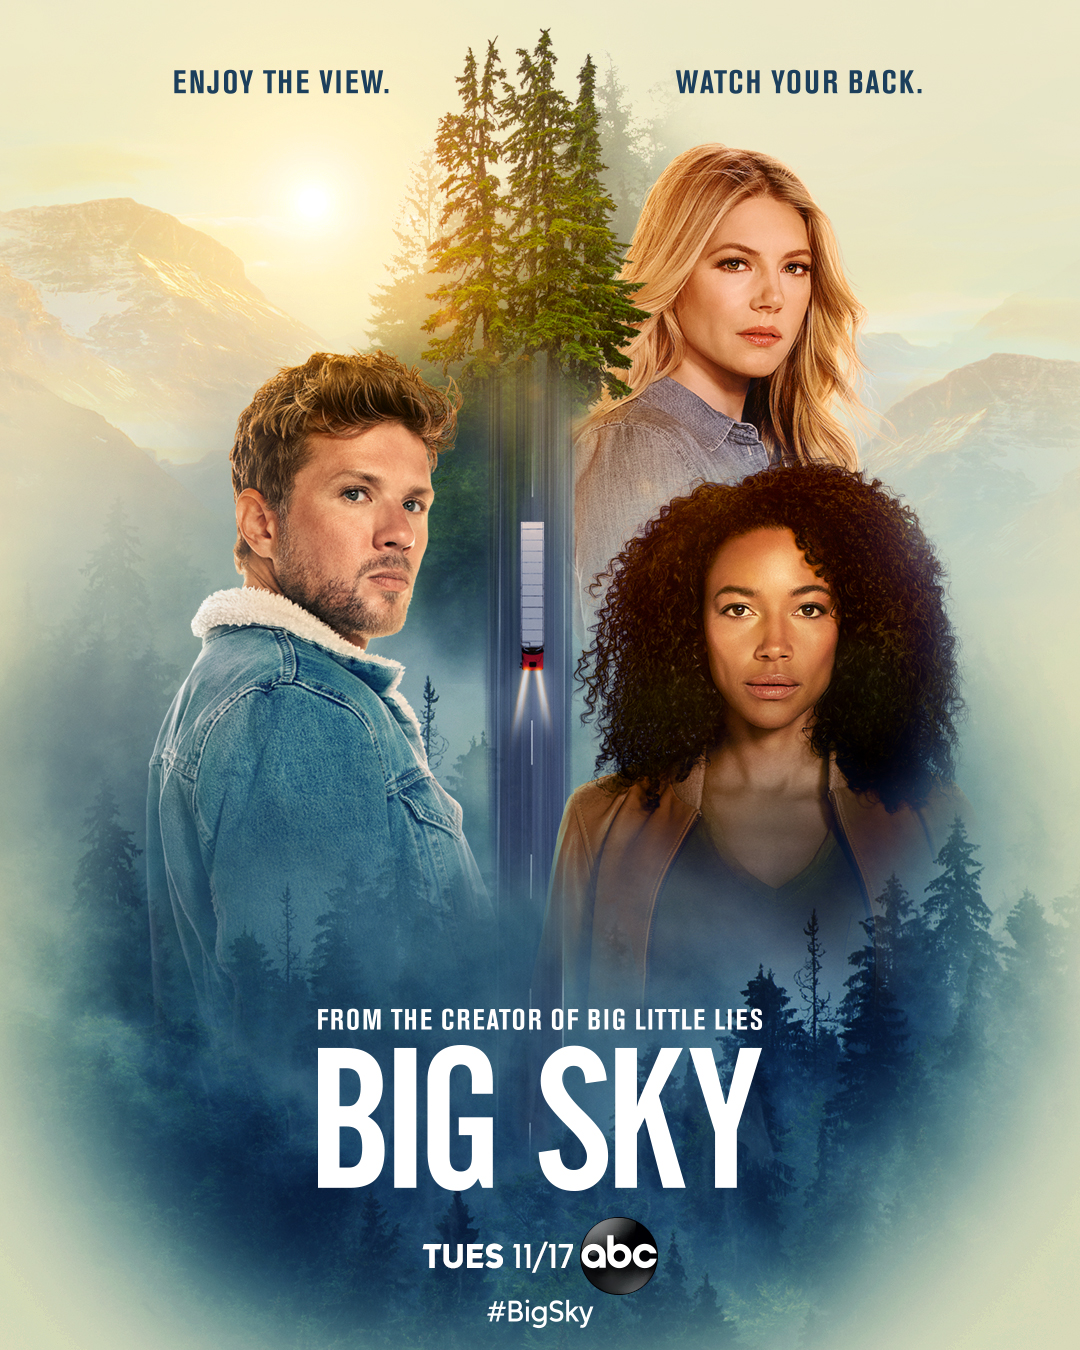 Big Sky (2020) - Season 1 Episode 3